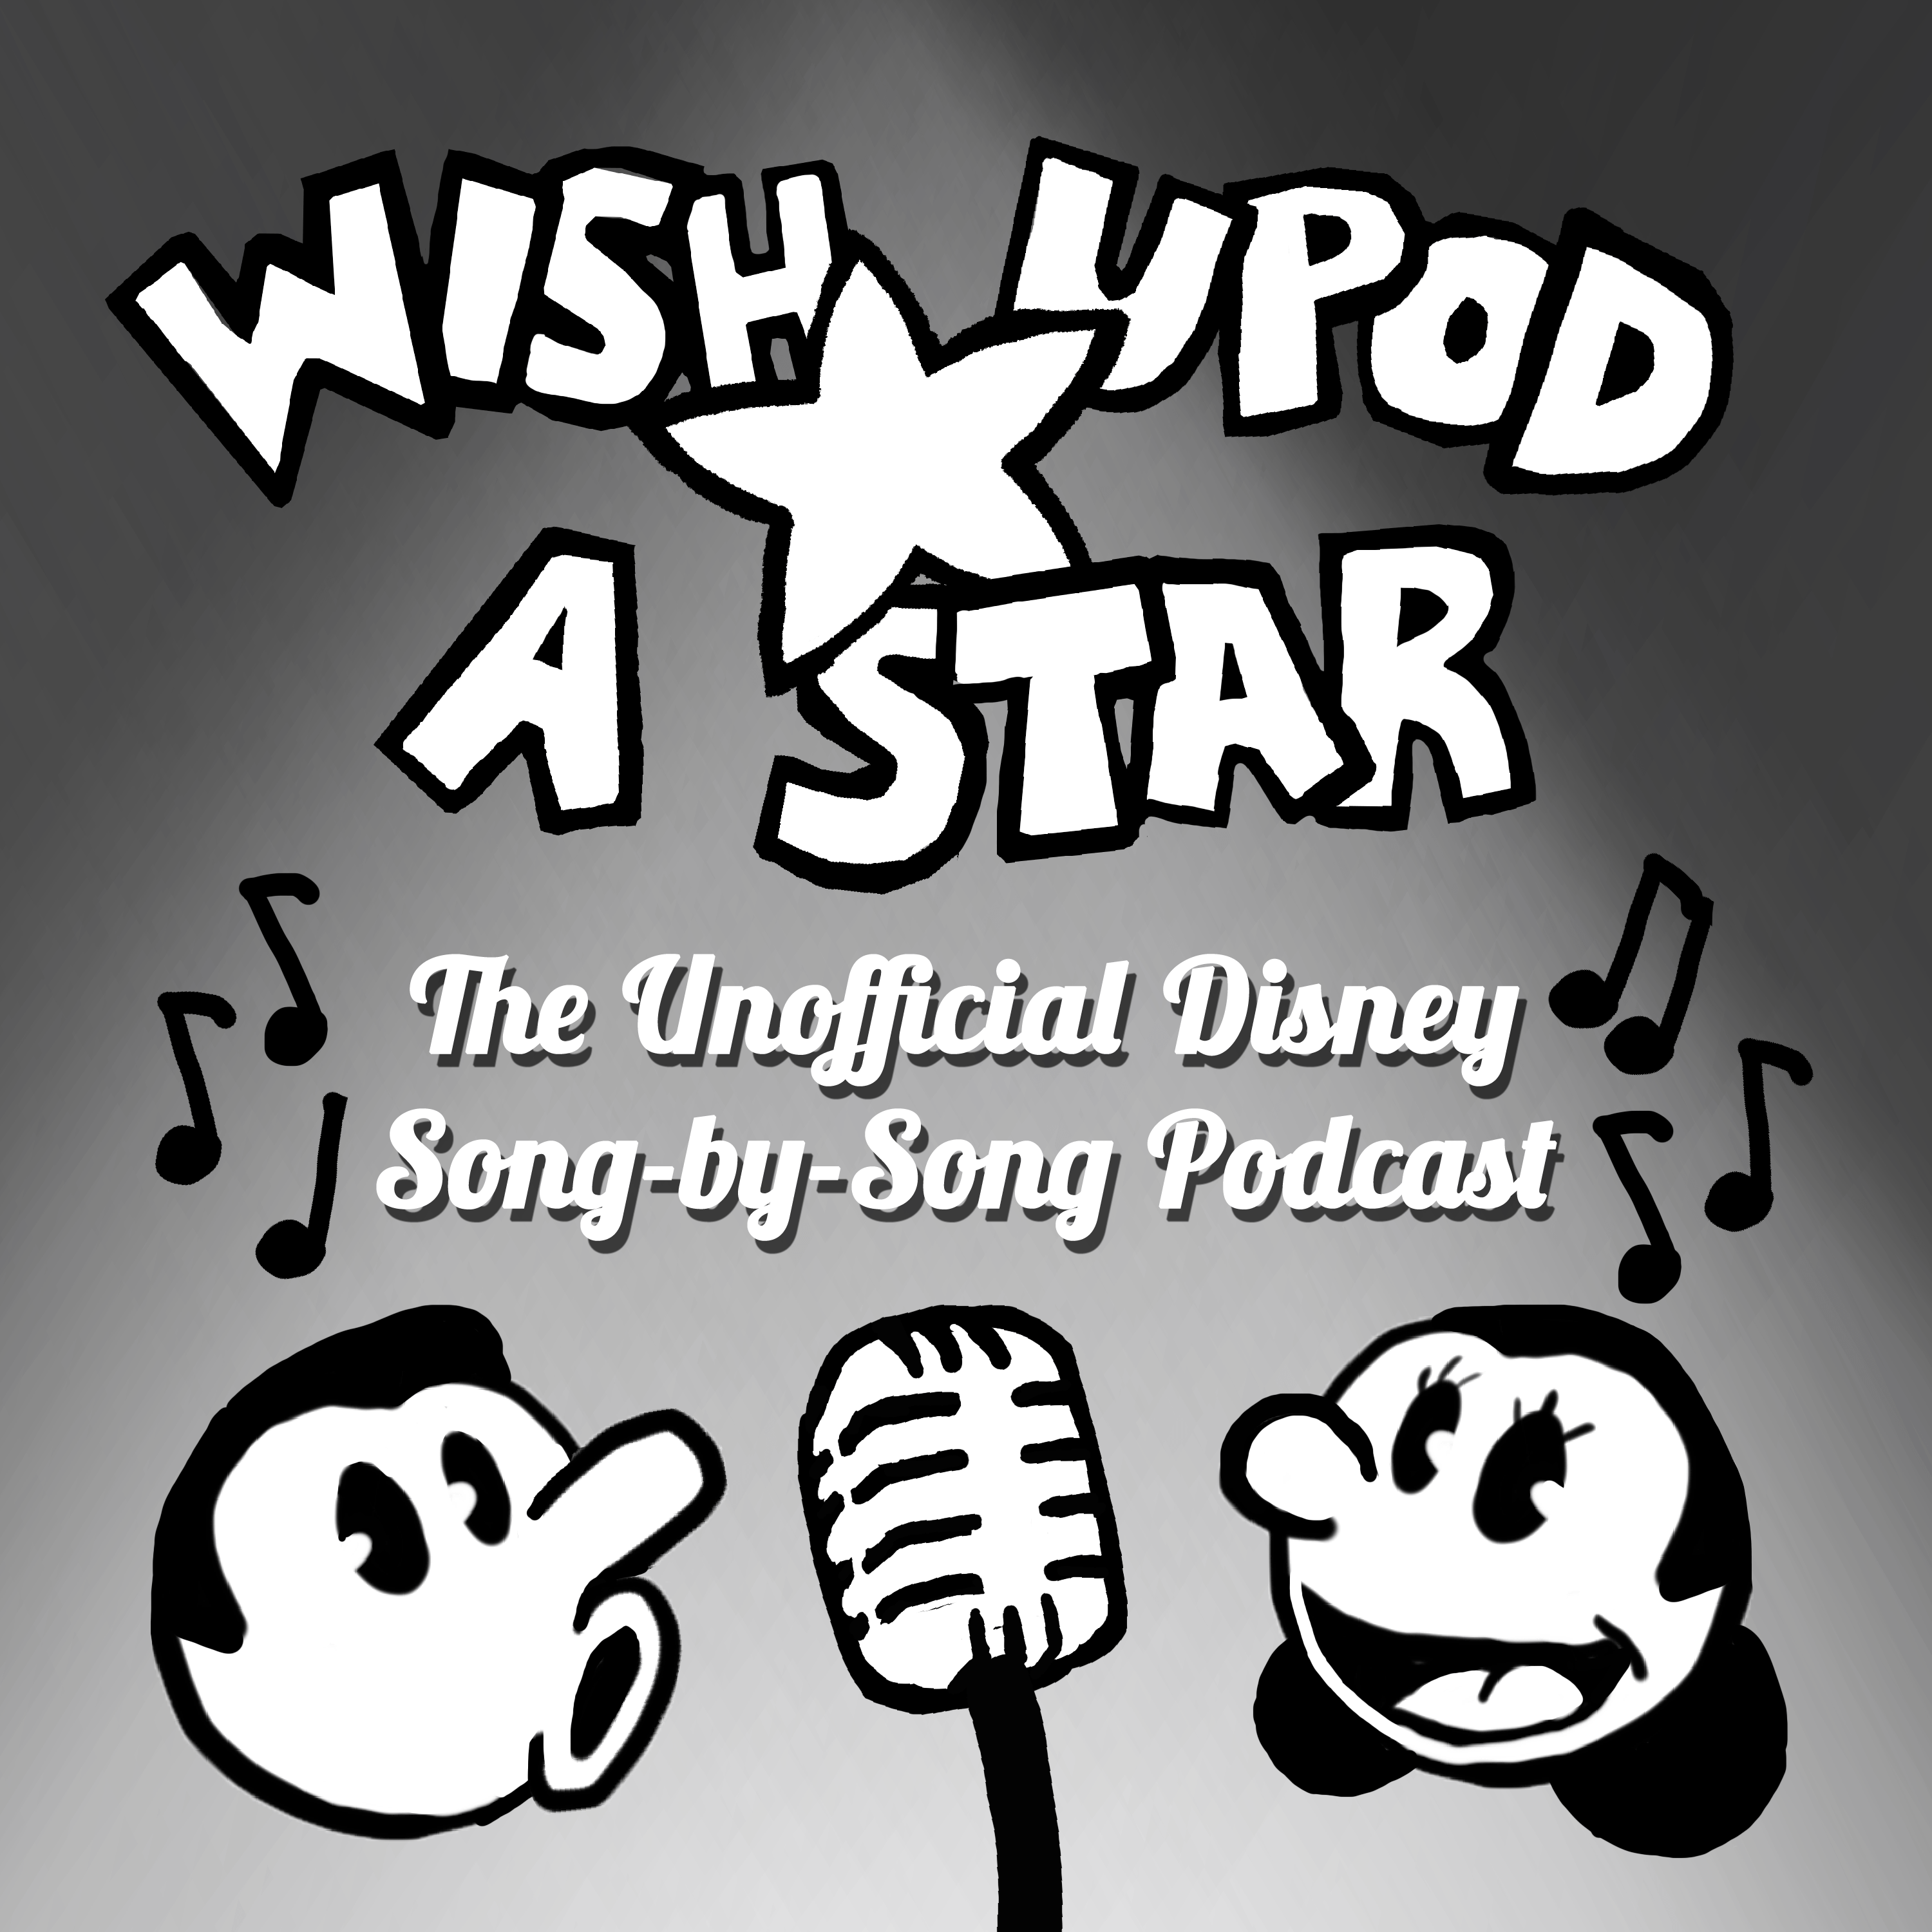 Wish uPOD a Star